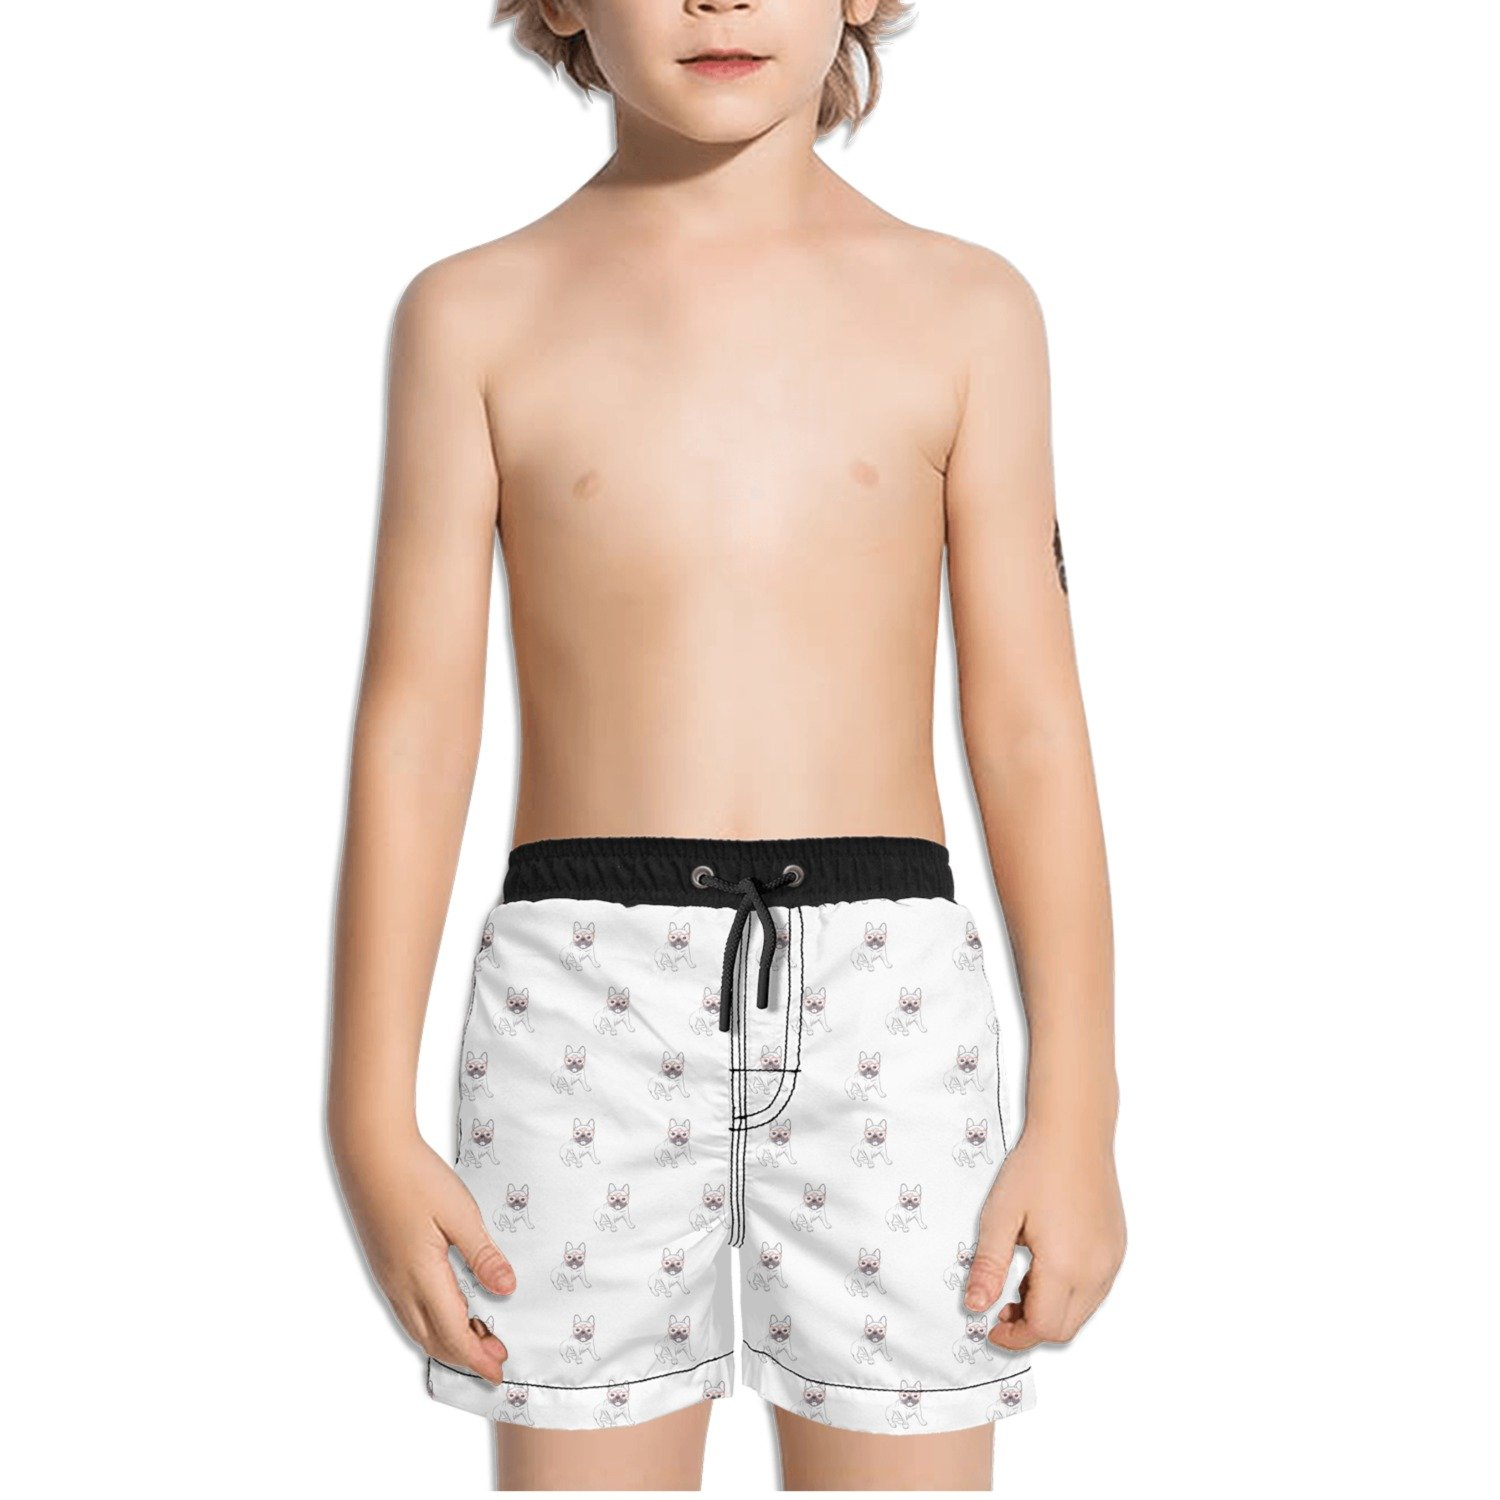 Juliuse Marthar Pug Gifts with Glasses White Swim Trunks Quick Dry Beach Board Shorts for Boys